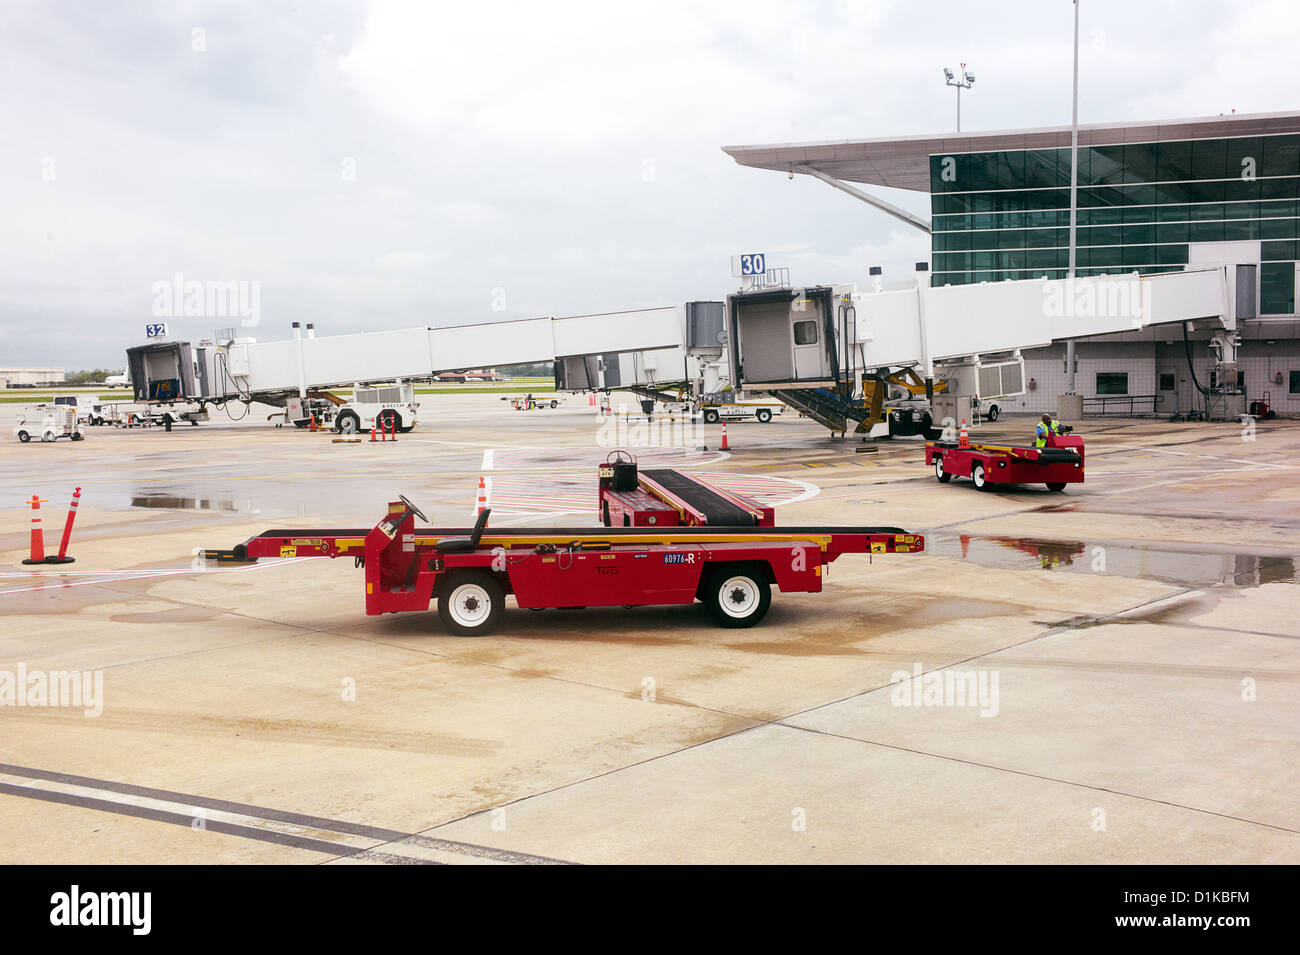 A red baggage loading car on an airport tarmac - Stock Image